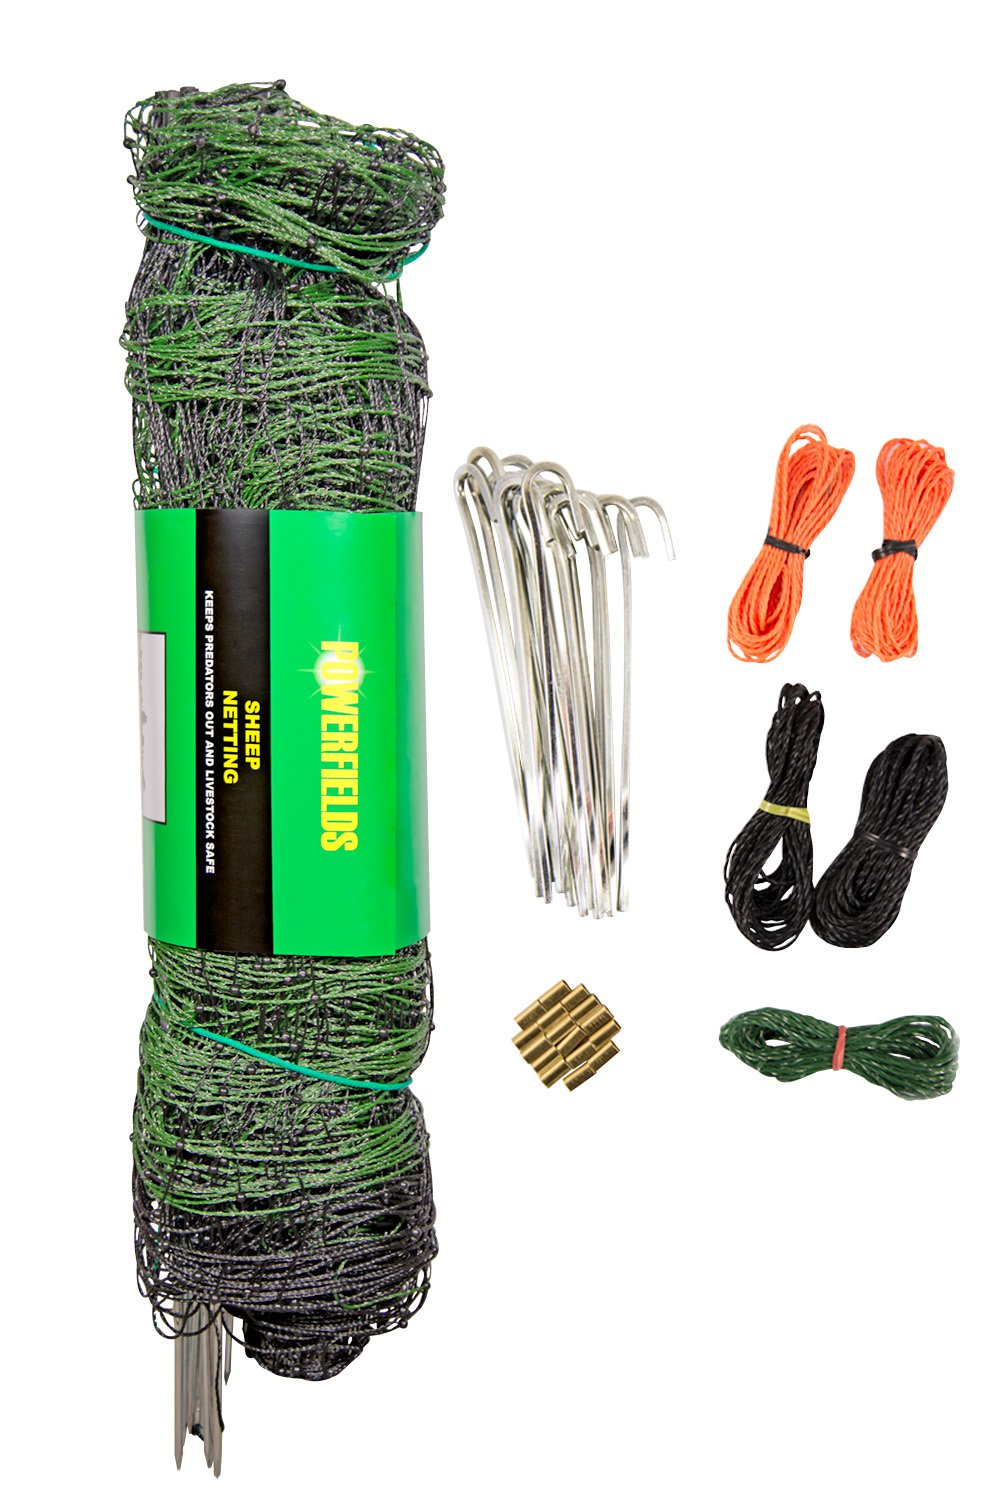 Powerfields P-89-G Electric 40'' Poultry / Goat Fence-Netting, 40-Inches Tall x 165-Feet Long Netting, 15 Line Post, 19 Stakes, 2 Tie Down Cords, Repair Kit, Black/White Netting